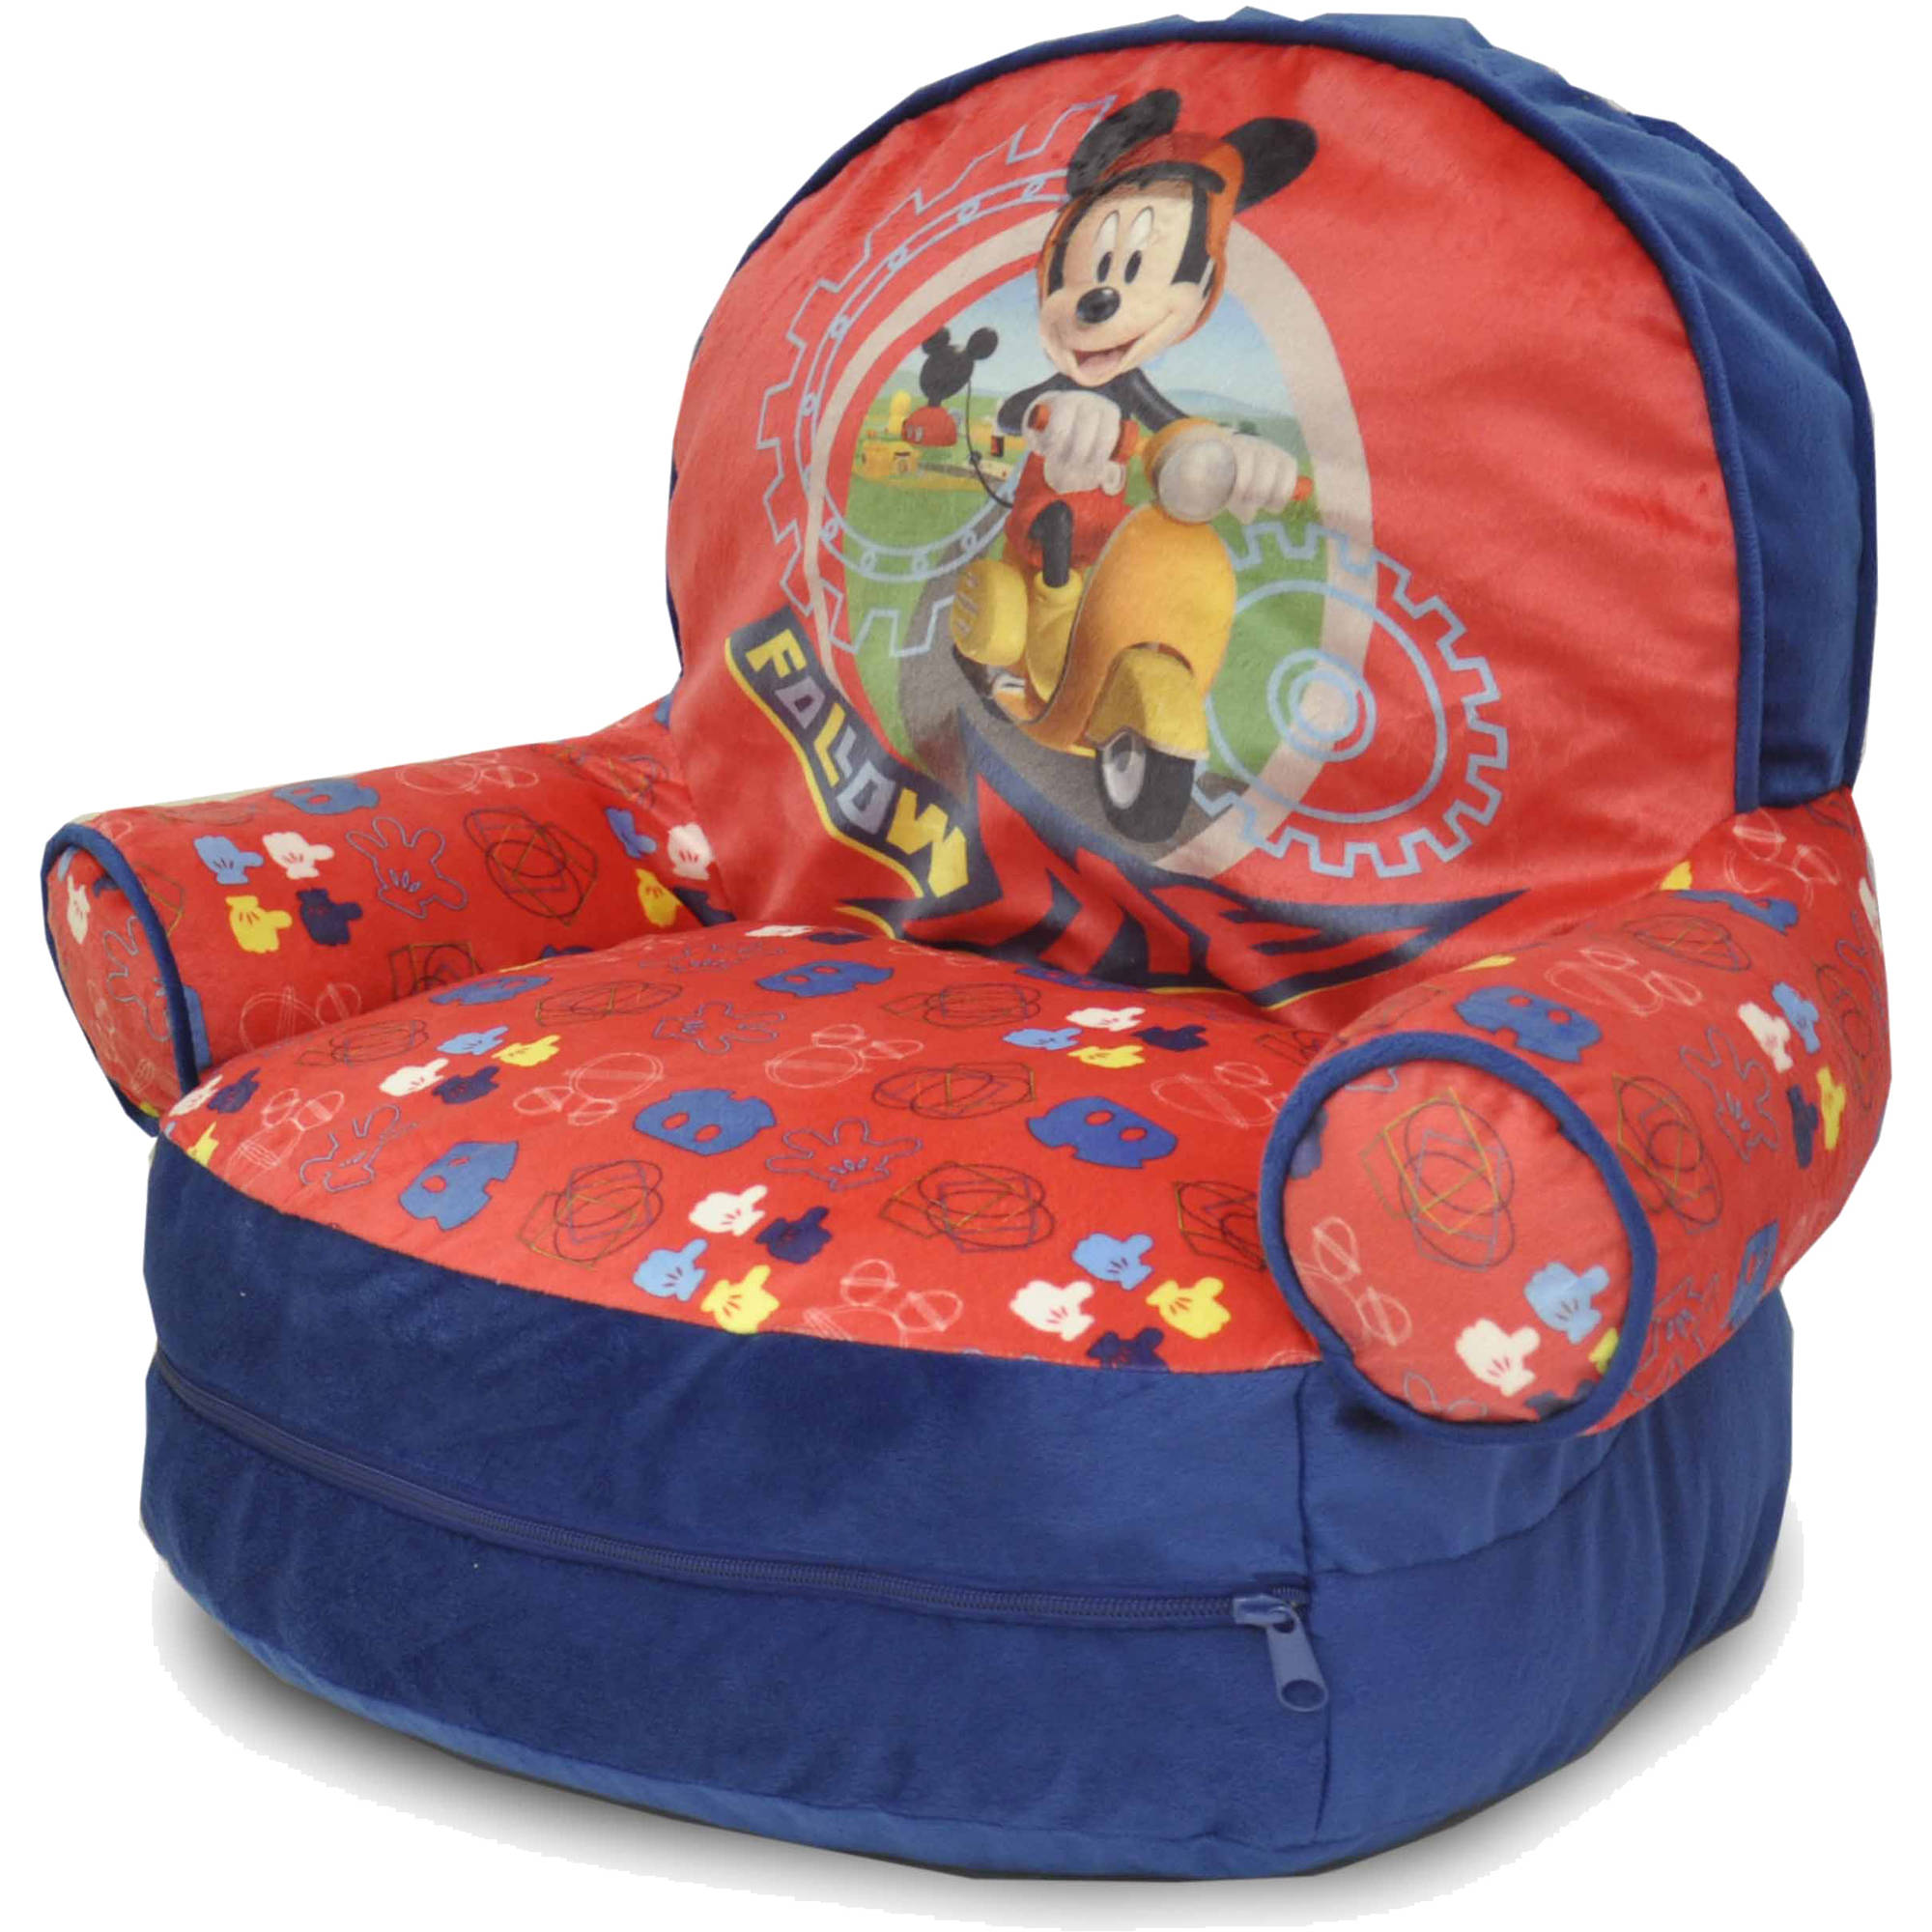 Disney Mickey Mouse Bean Bag With BONUS Slumber Bag   Walmart.com